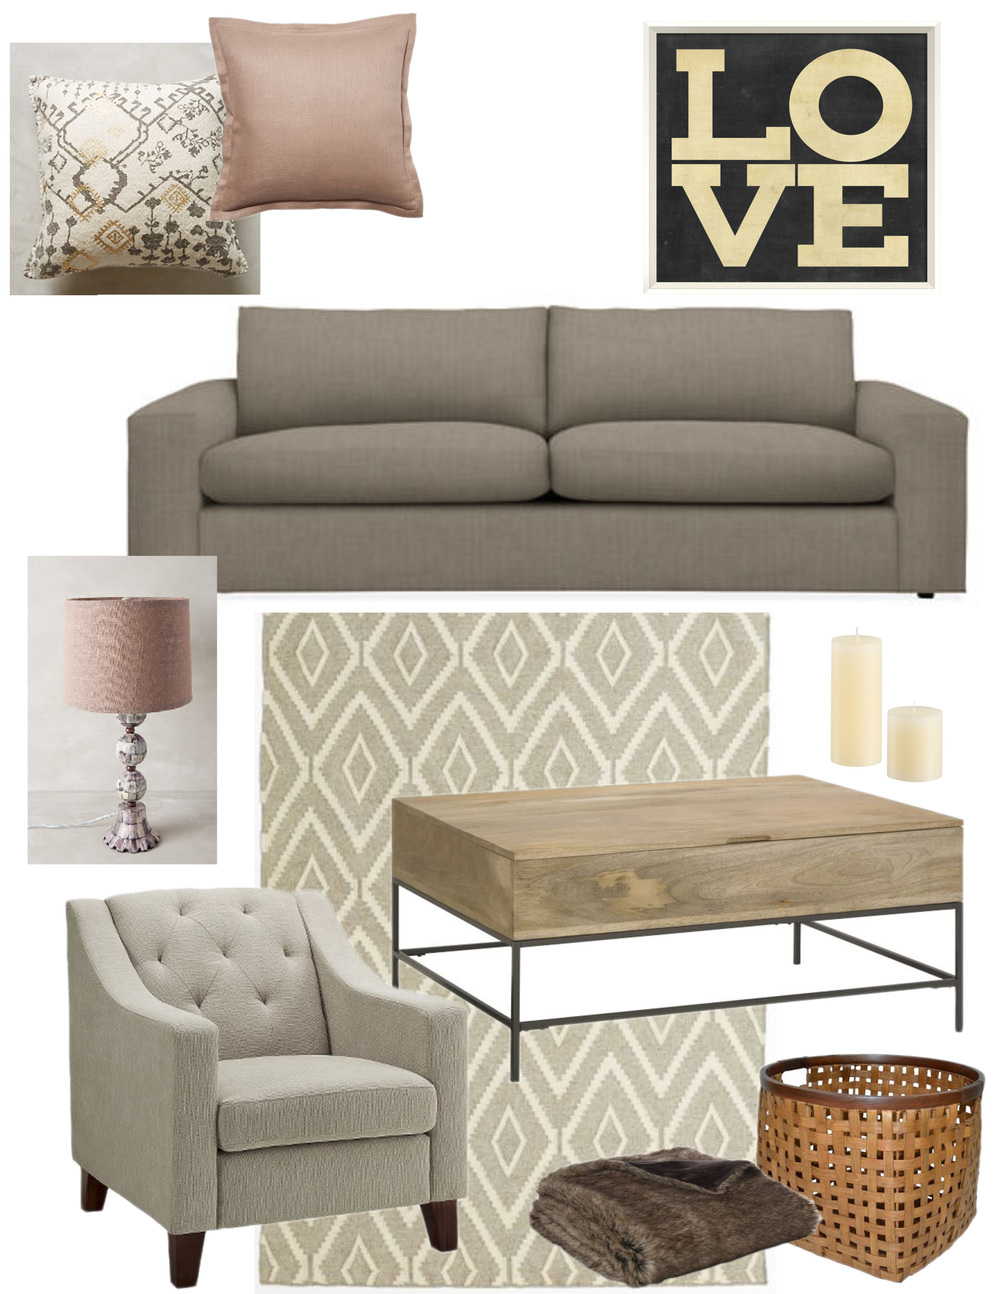 Patterned Pillow / Rose Pillow / LOVE Sign / Couch / Anthropologie Lamp / Candles / Rug / Coffee Table / Tufted Chair / Fur Throw / Basket